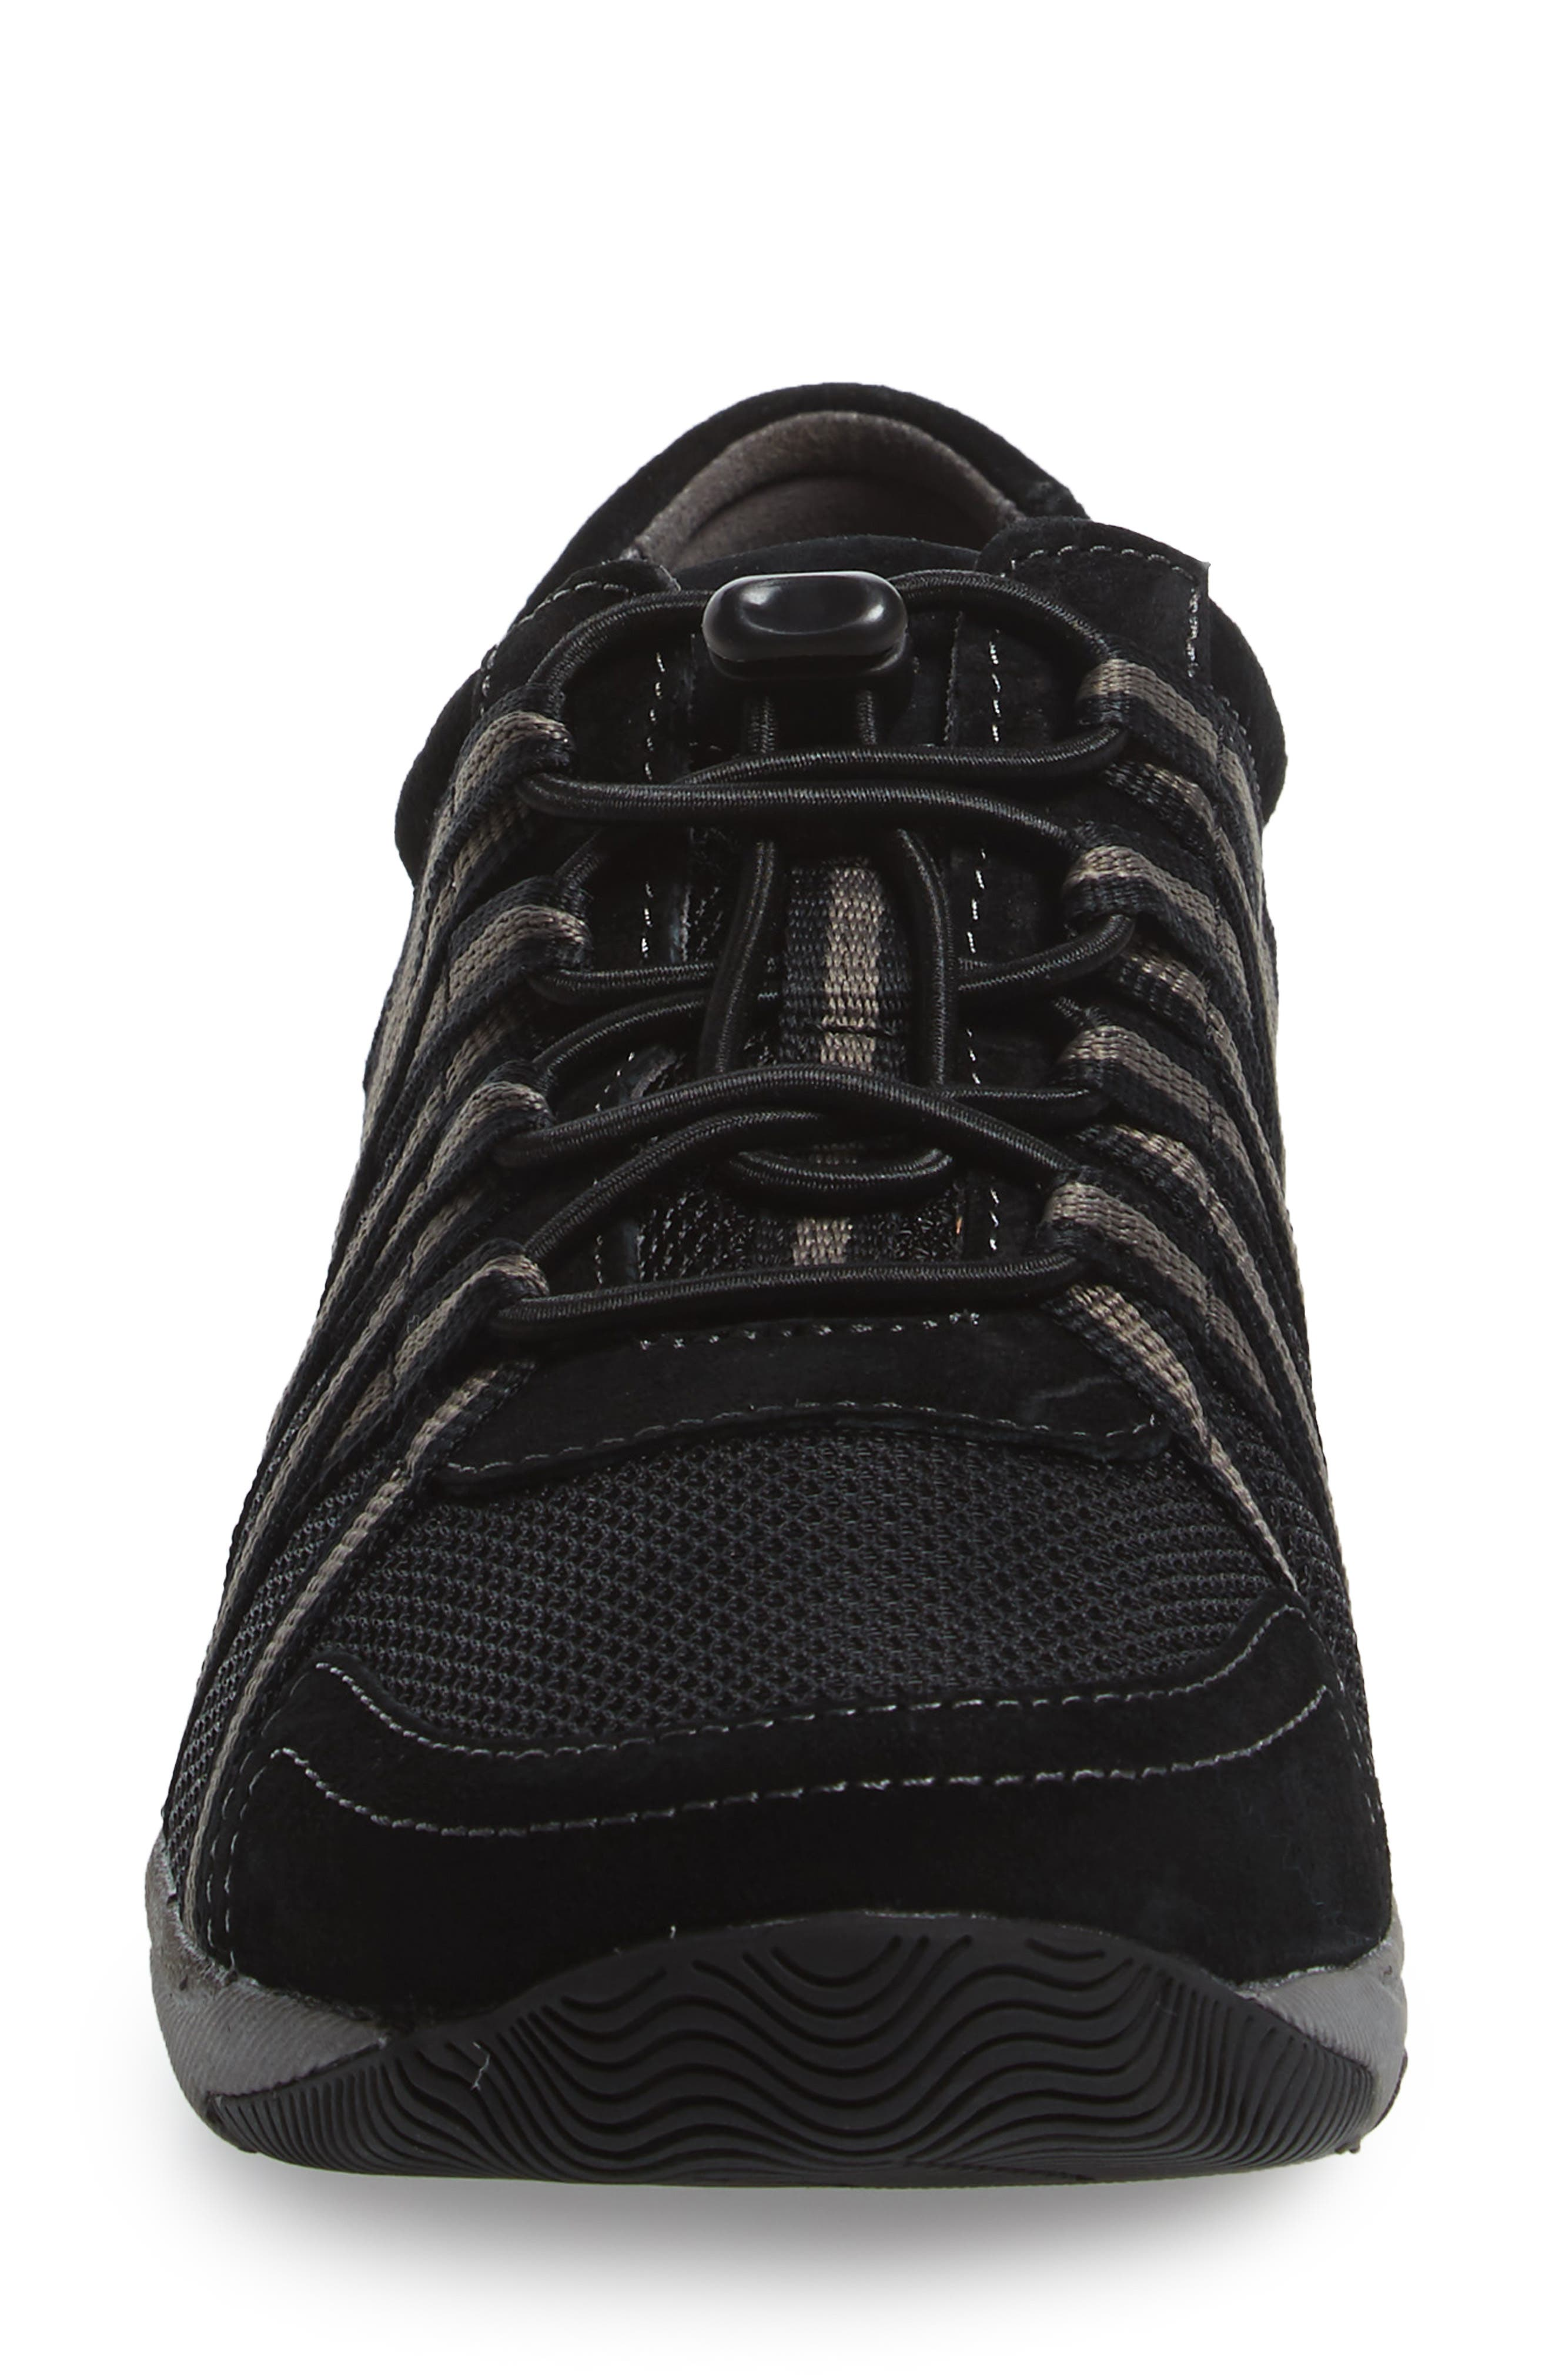 Halifax Collection Honor Sneaker,                             Alternate thumbnail 25, color,